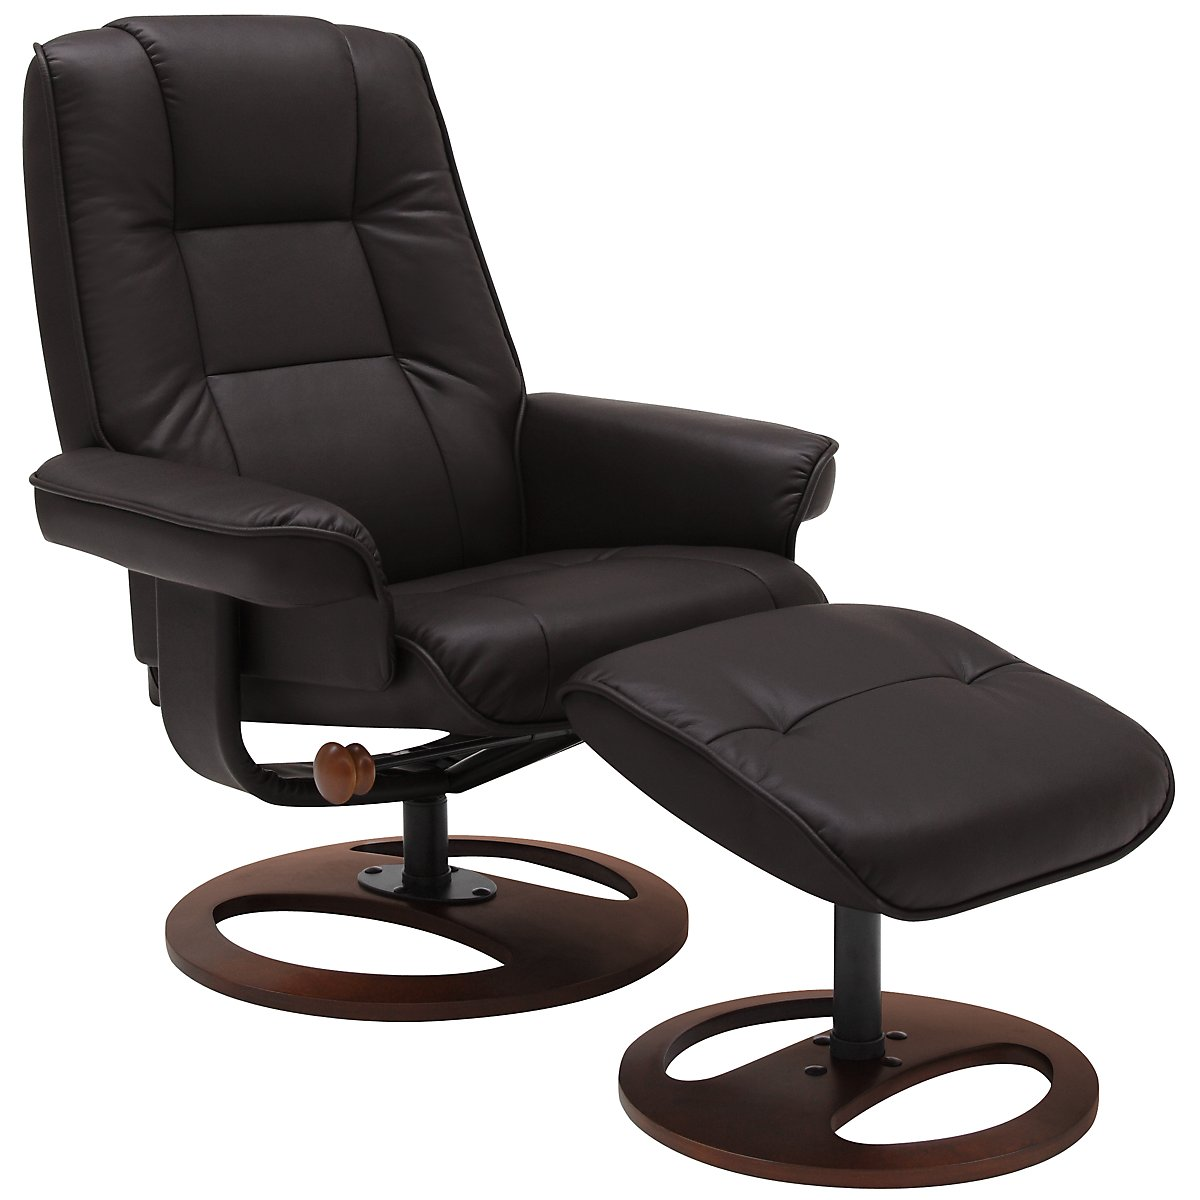 Dawson Dark Brown Upholstered Recliner & Ottoman